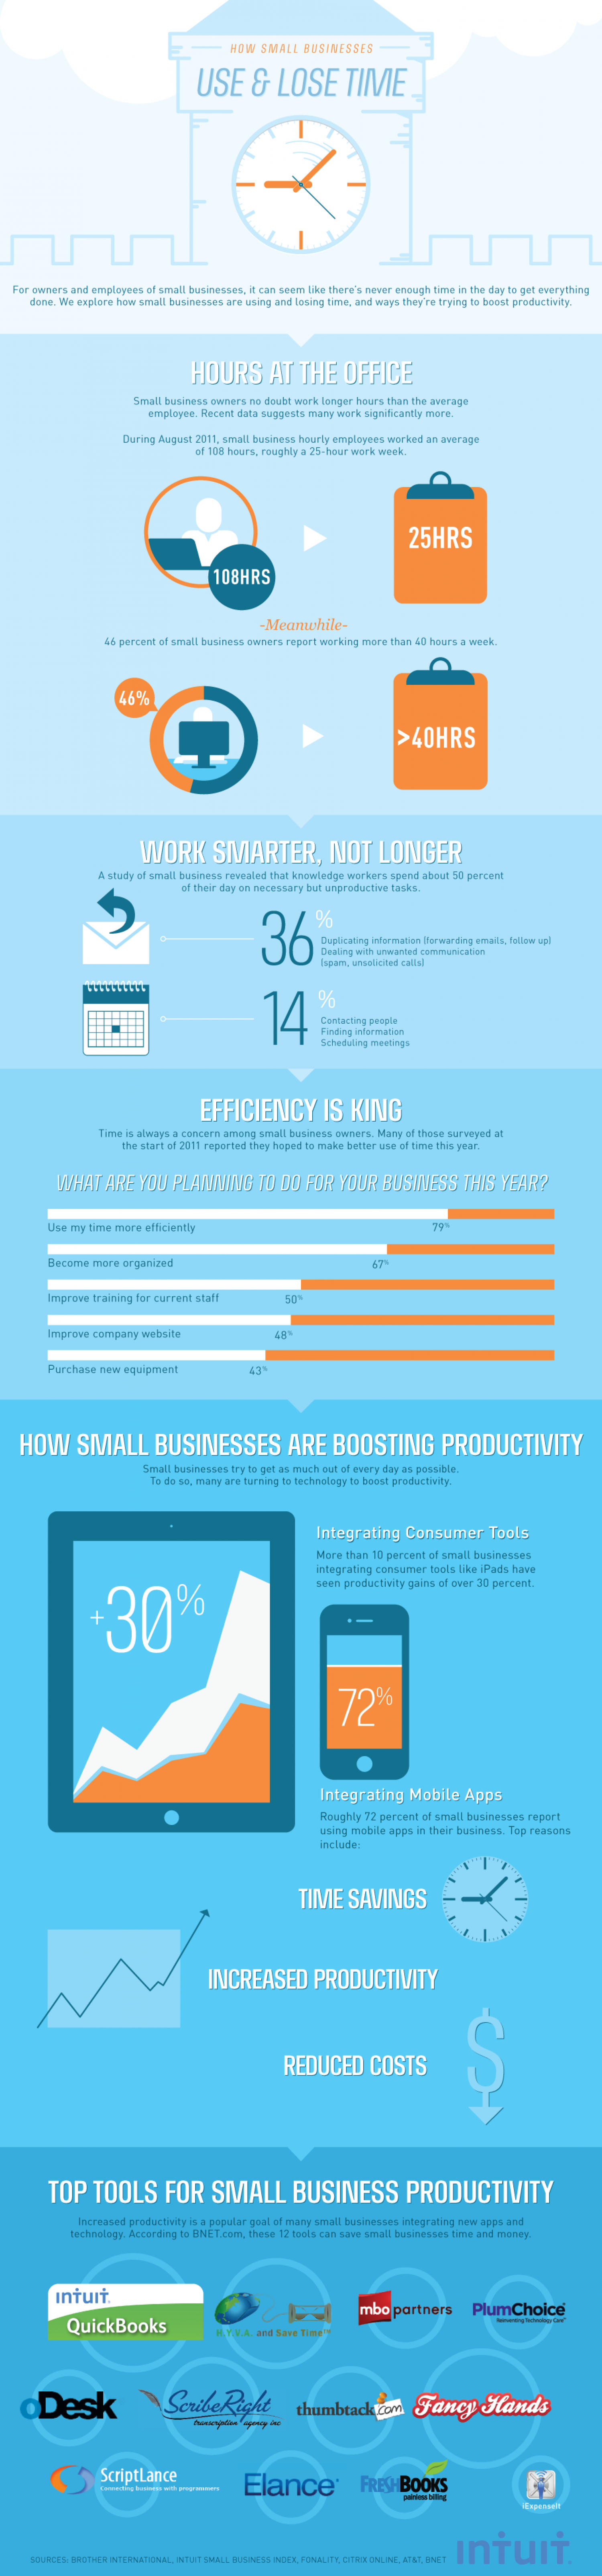 How Small Businesses Lose And Use Time Infographic